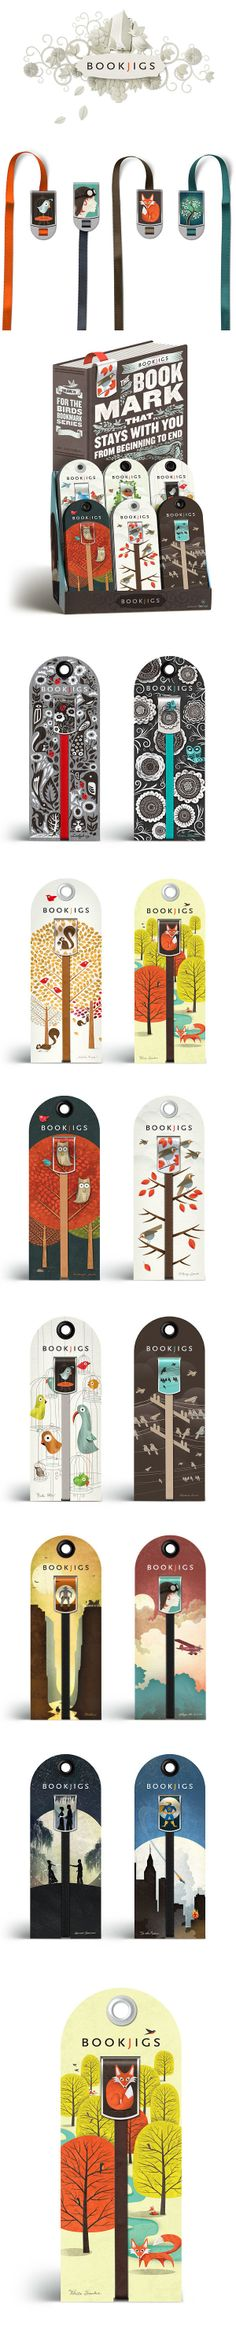 Bookjigs By: Russ Grey #book #package #design